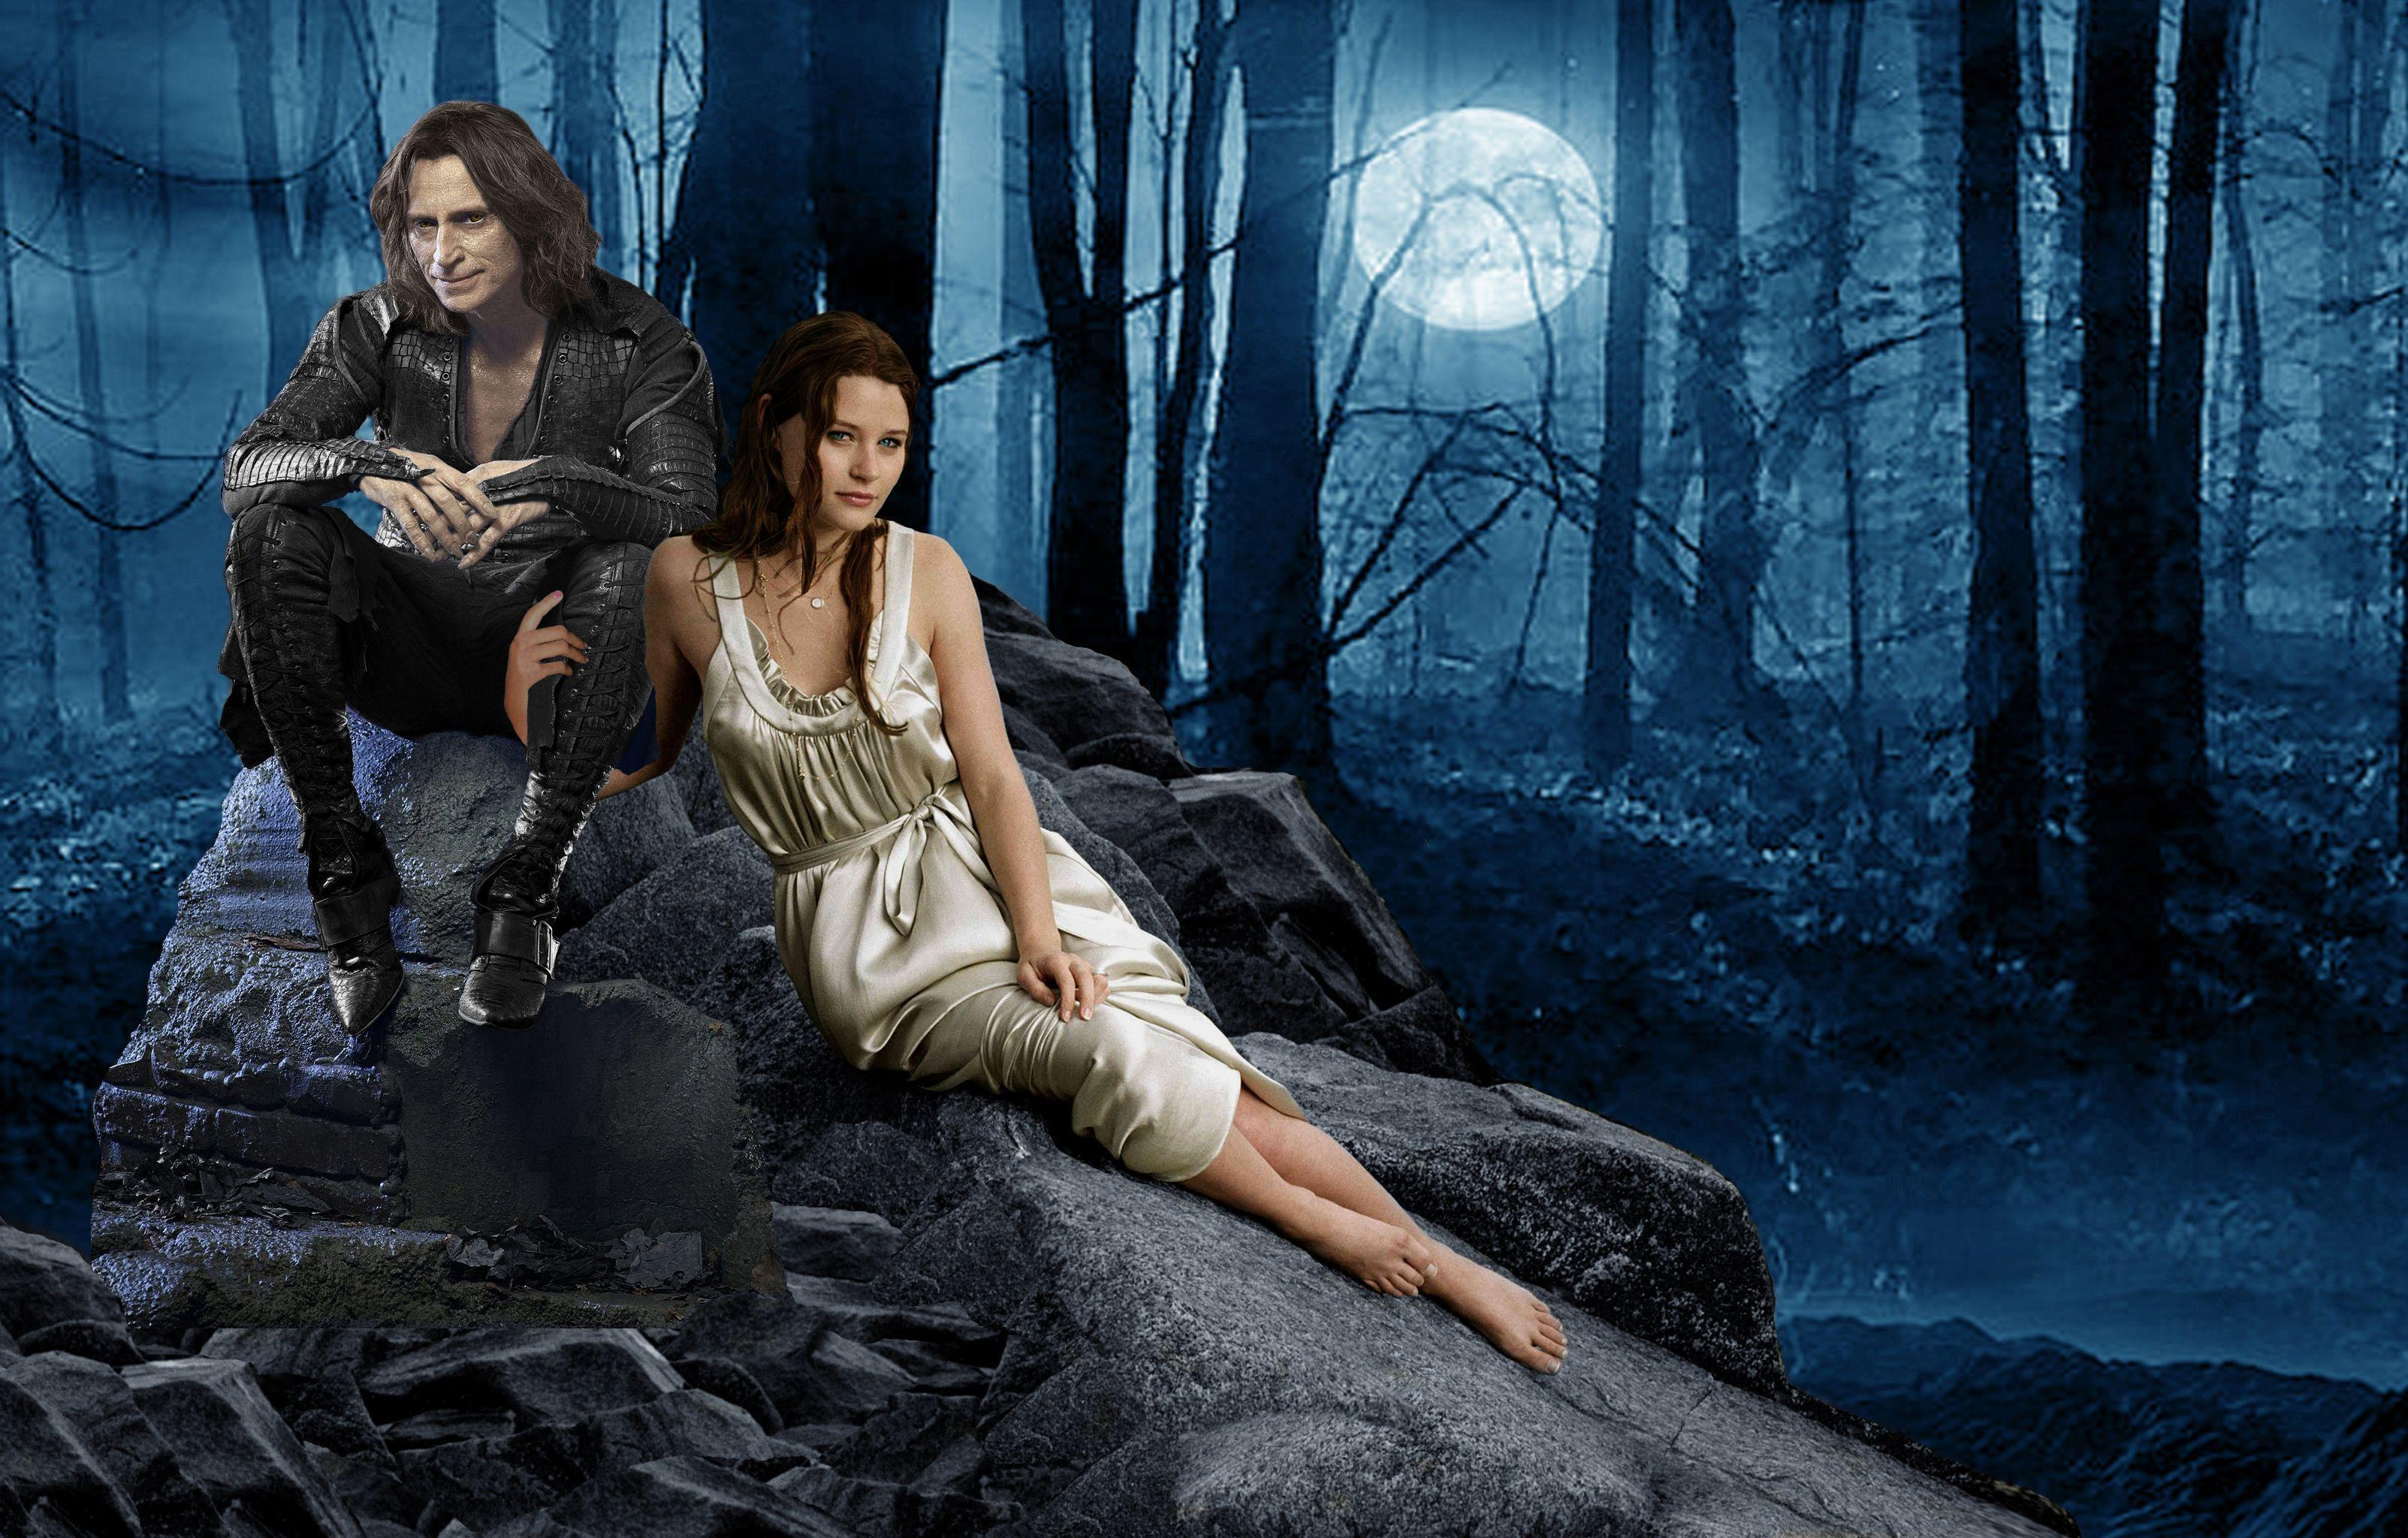 Beauty & the Beast Once Upon a Time - Wallpaper #1840 on WallpaperMade